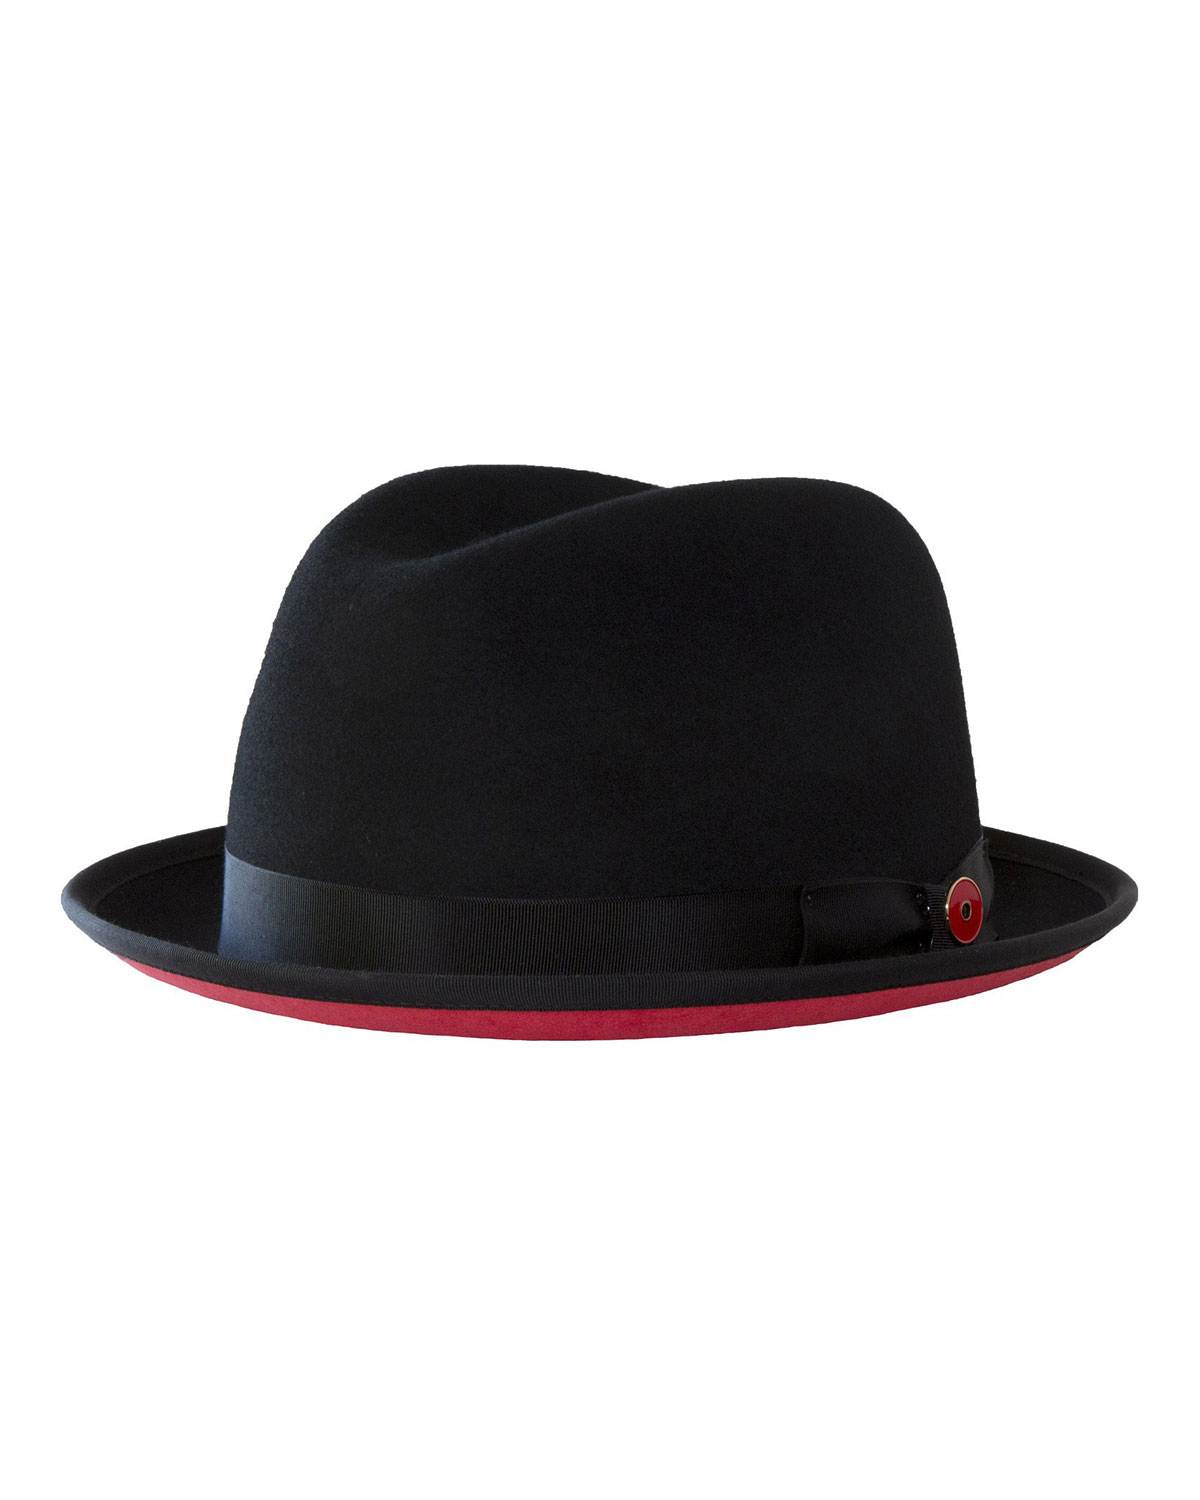 8ed9c3c010116 keith and james fedoras hats for men - Buy best men s keith and ...